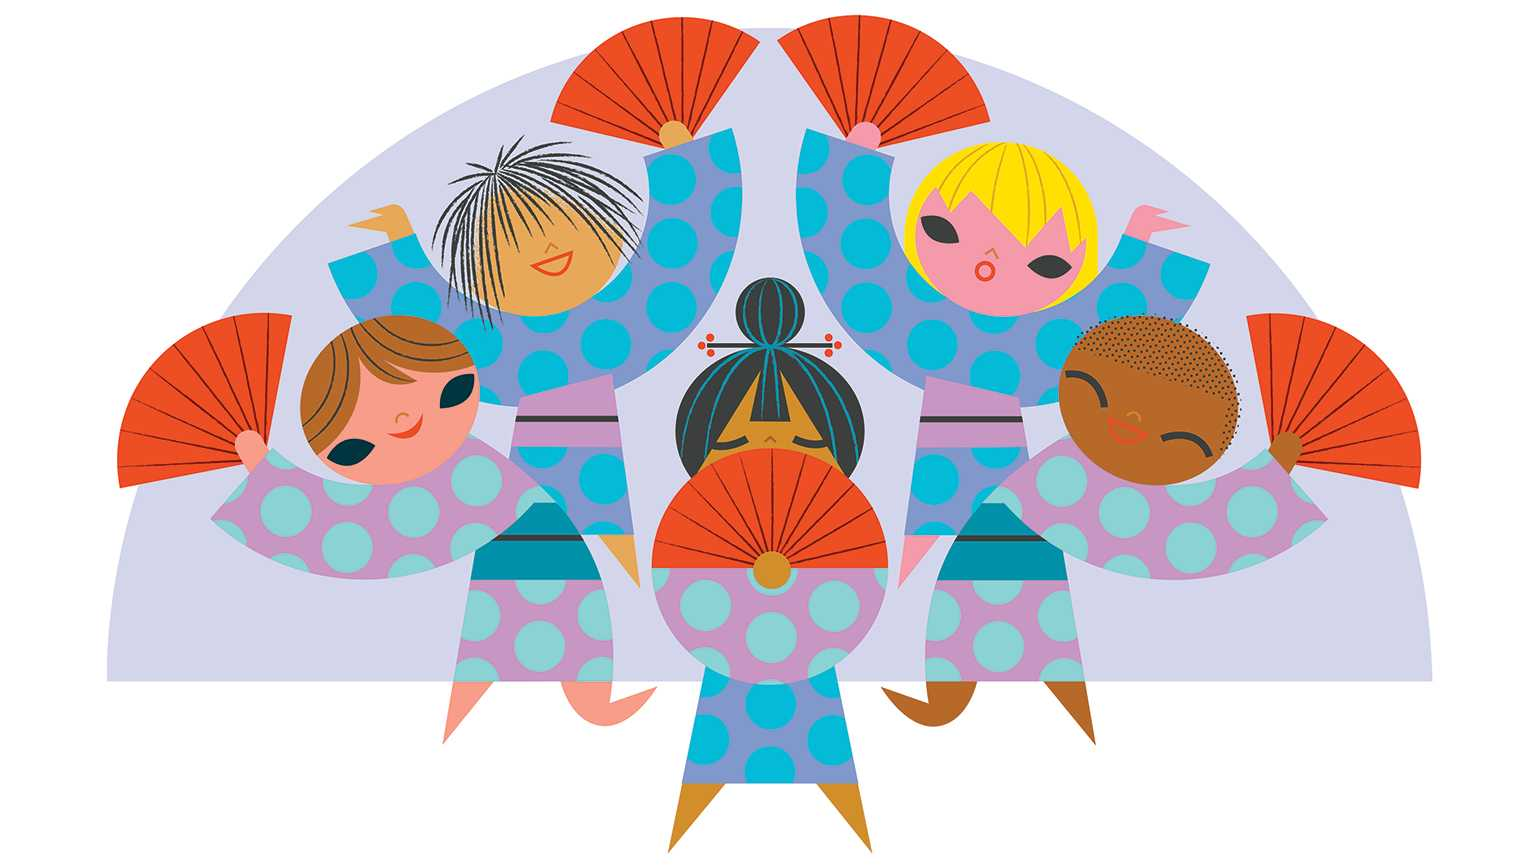 An artist's rendering of a multicultural group of children doing a traditional Japanese dance